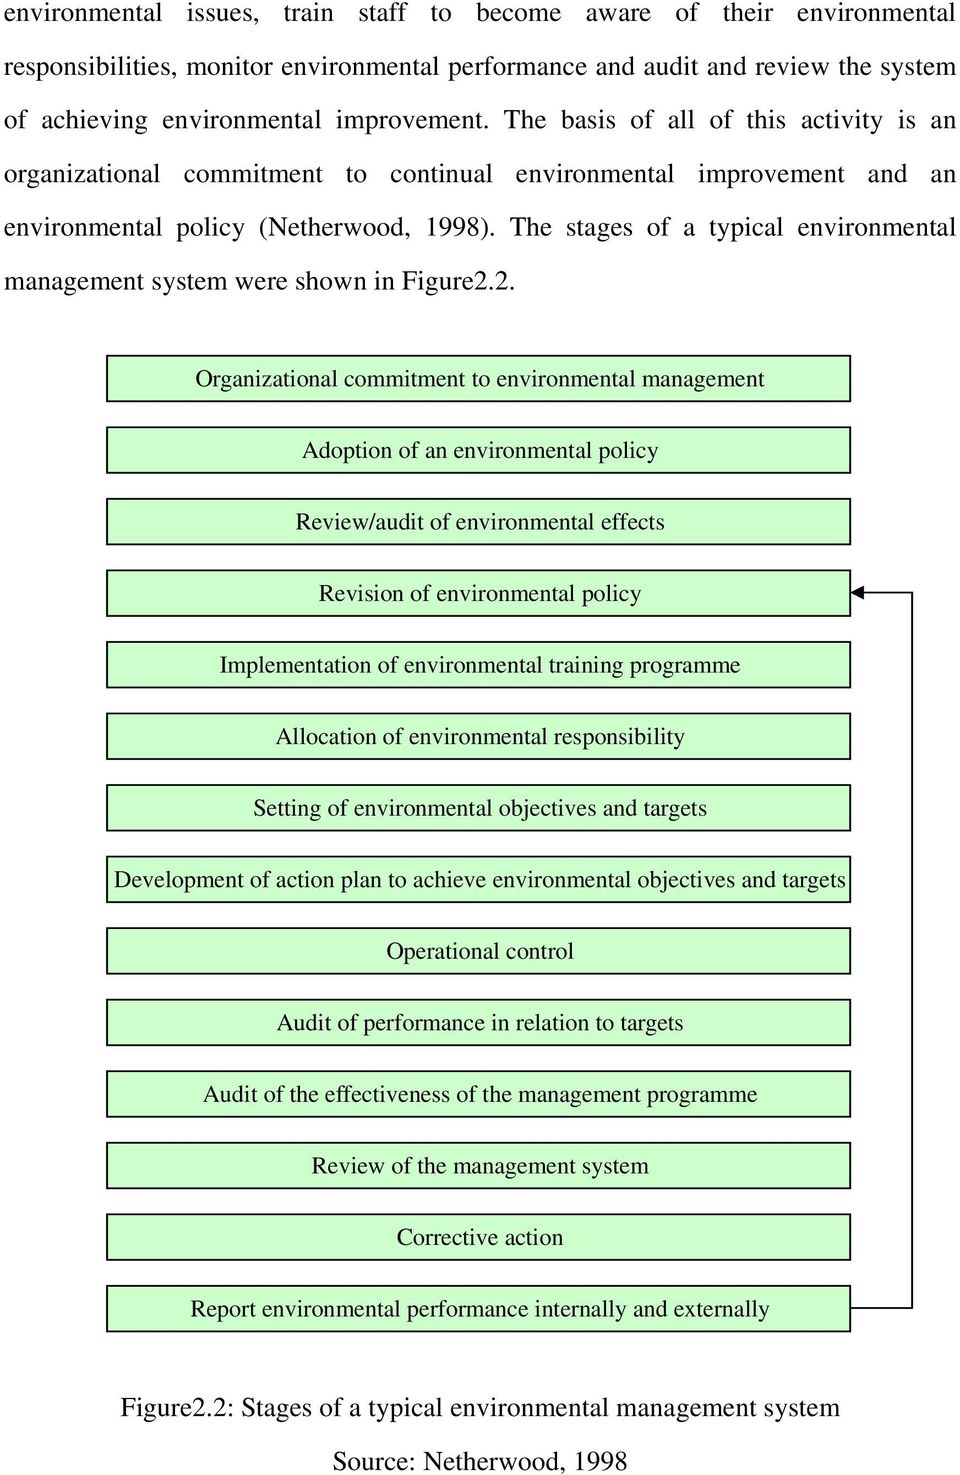 The stages of a typical environmental management system were shown in Figure2.